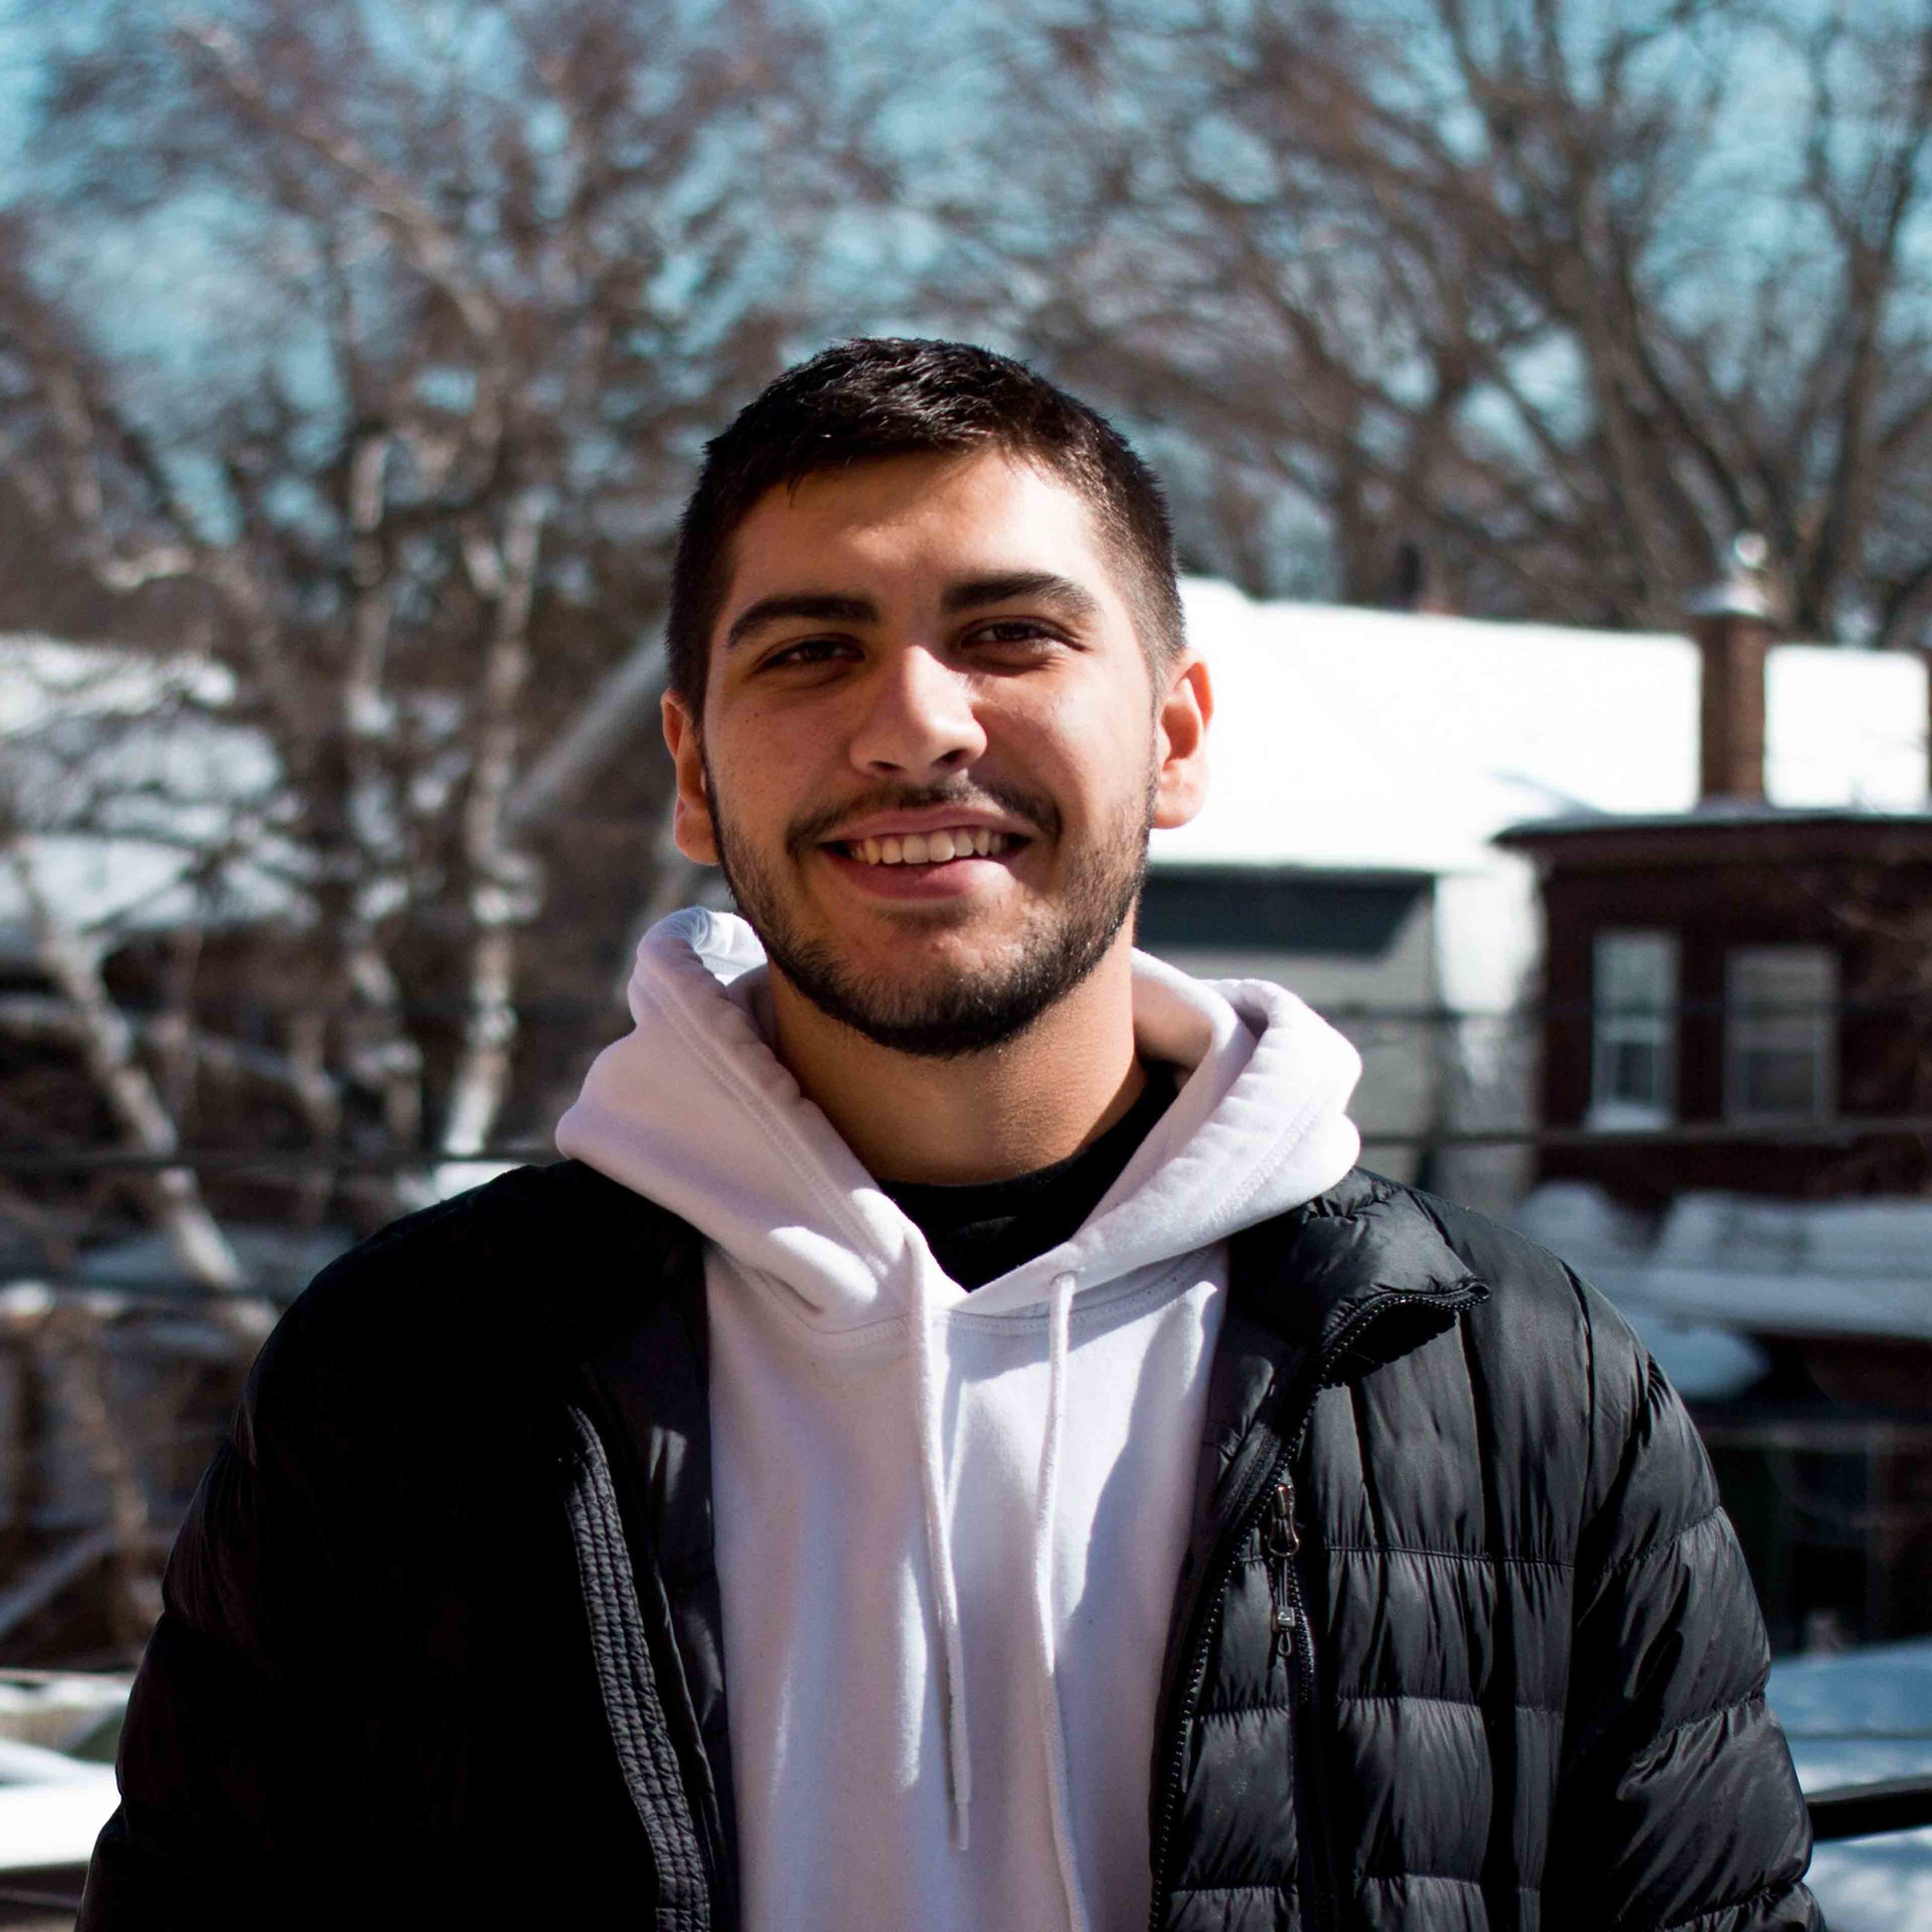 Nadeem Oudeh joined the Parallel team as a videographer in early 2018. He studied Film Production at Humber College, specializing in cinematography, directing and editing. He has worked on many video projects and has become a vital member of the Parallel Team.